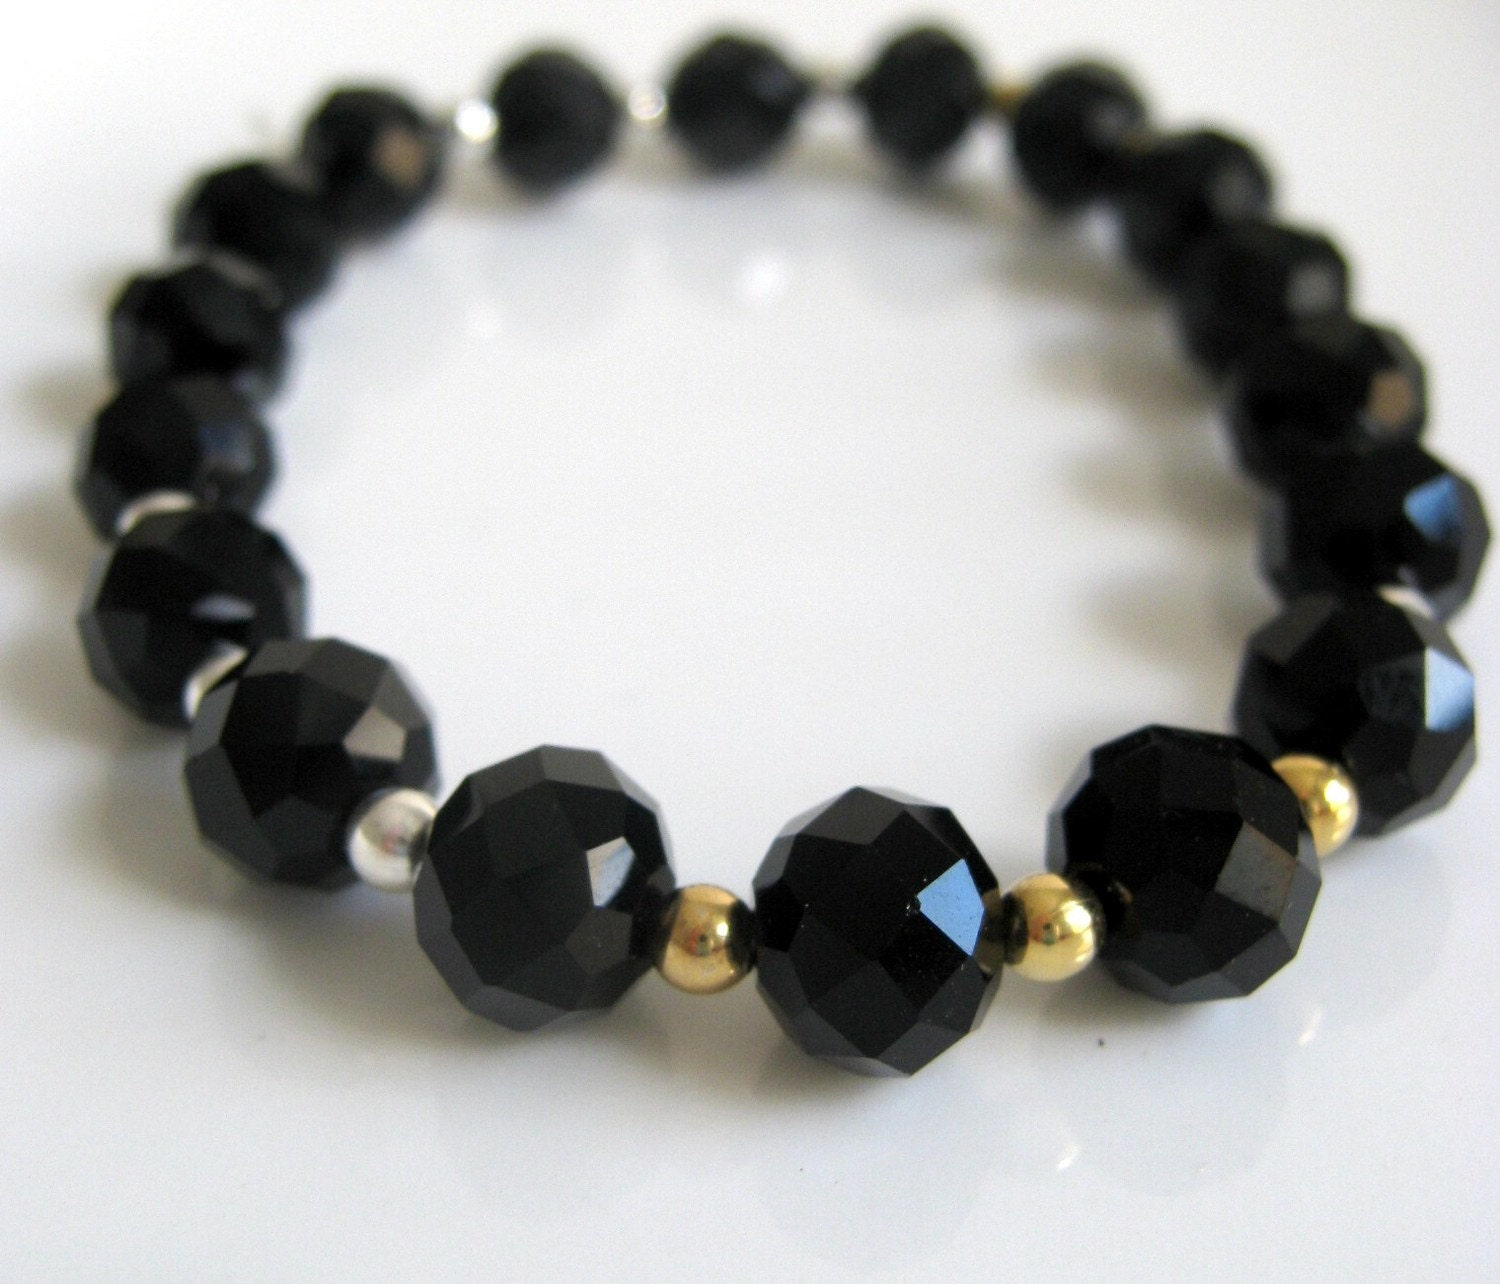 black crystal stretch bracelet with gold and silver accents